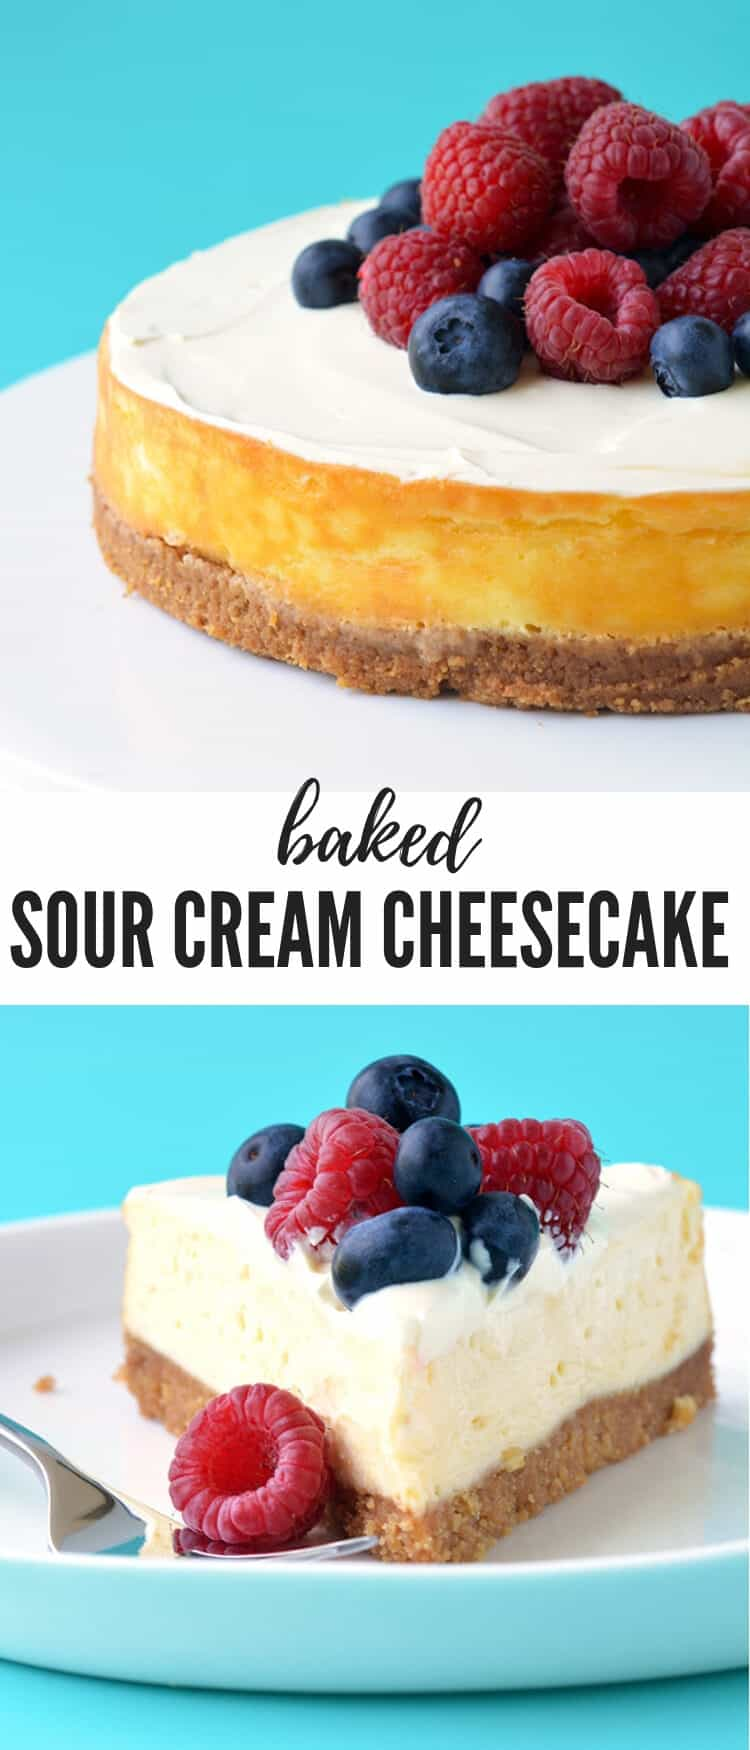 A creamy baked Sour Cream Cheesecake topped with fresh berries. Made without a water bath, this easy, extra creamy cheesecake is perfect for a special occasion. Recipe from sweetestmenu.com #cheesecake #sourcream #berries #newyorkcheesecake